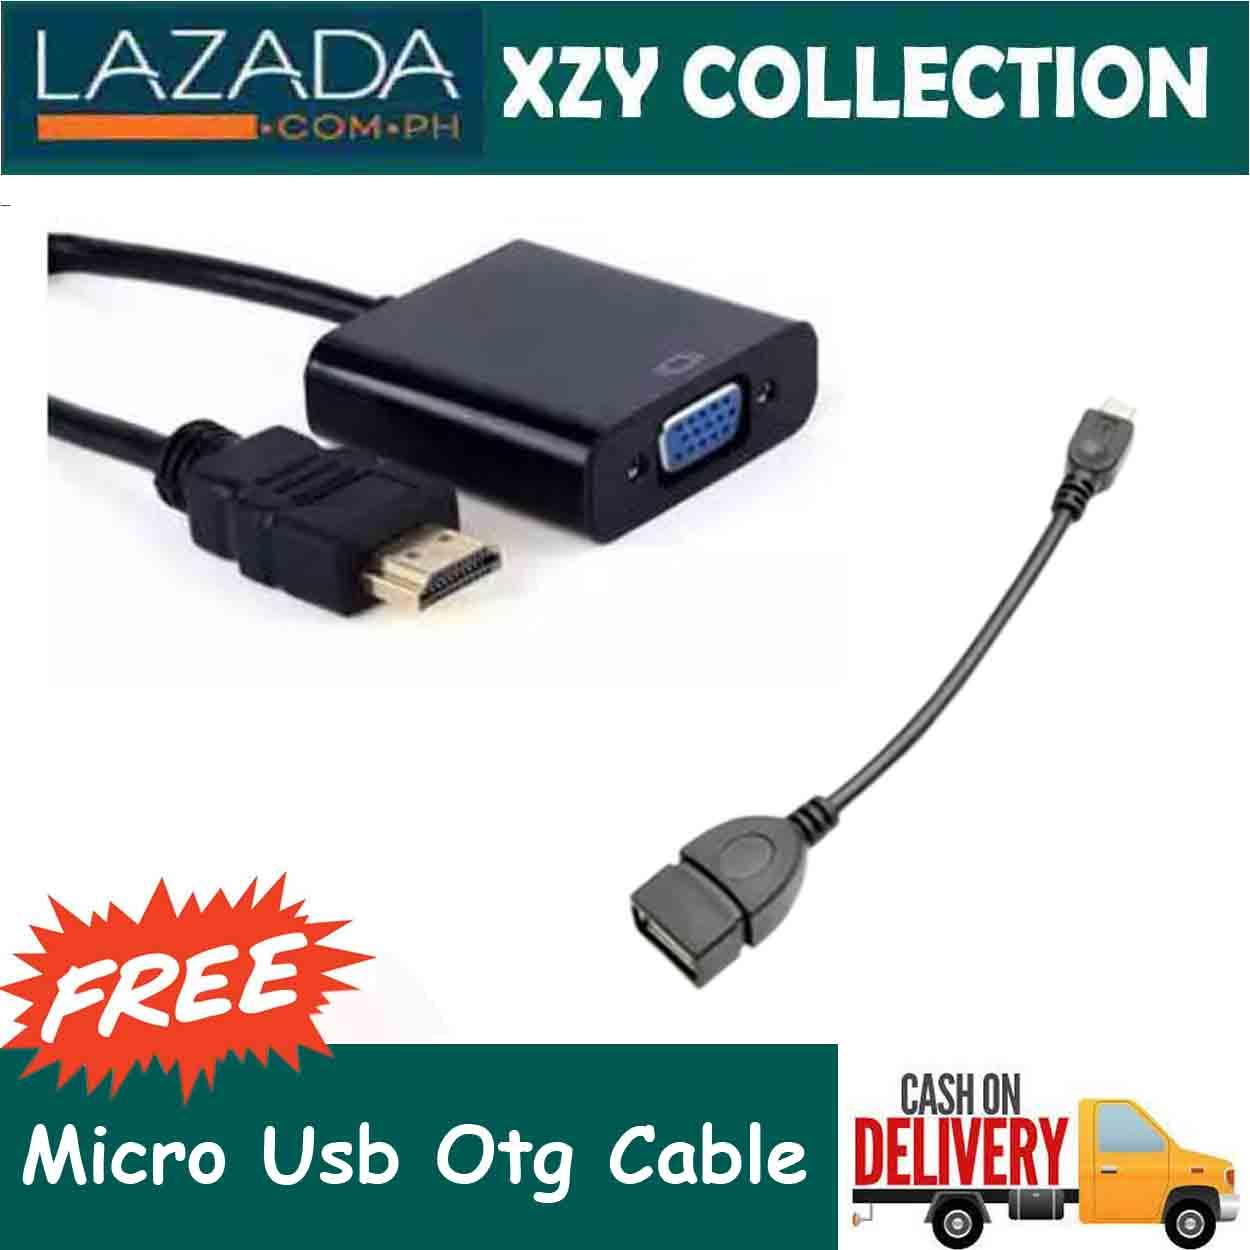 Vga Cables For Sale Computer Prices Brands Specs In Kabel 15m High Quality Gold Plated 15meter 15 M 1080p Hdmi Male To Female Video Converter Adapter Cable Pc Dvd Ps3